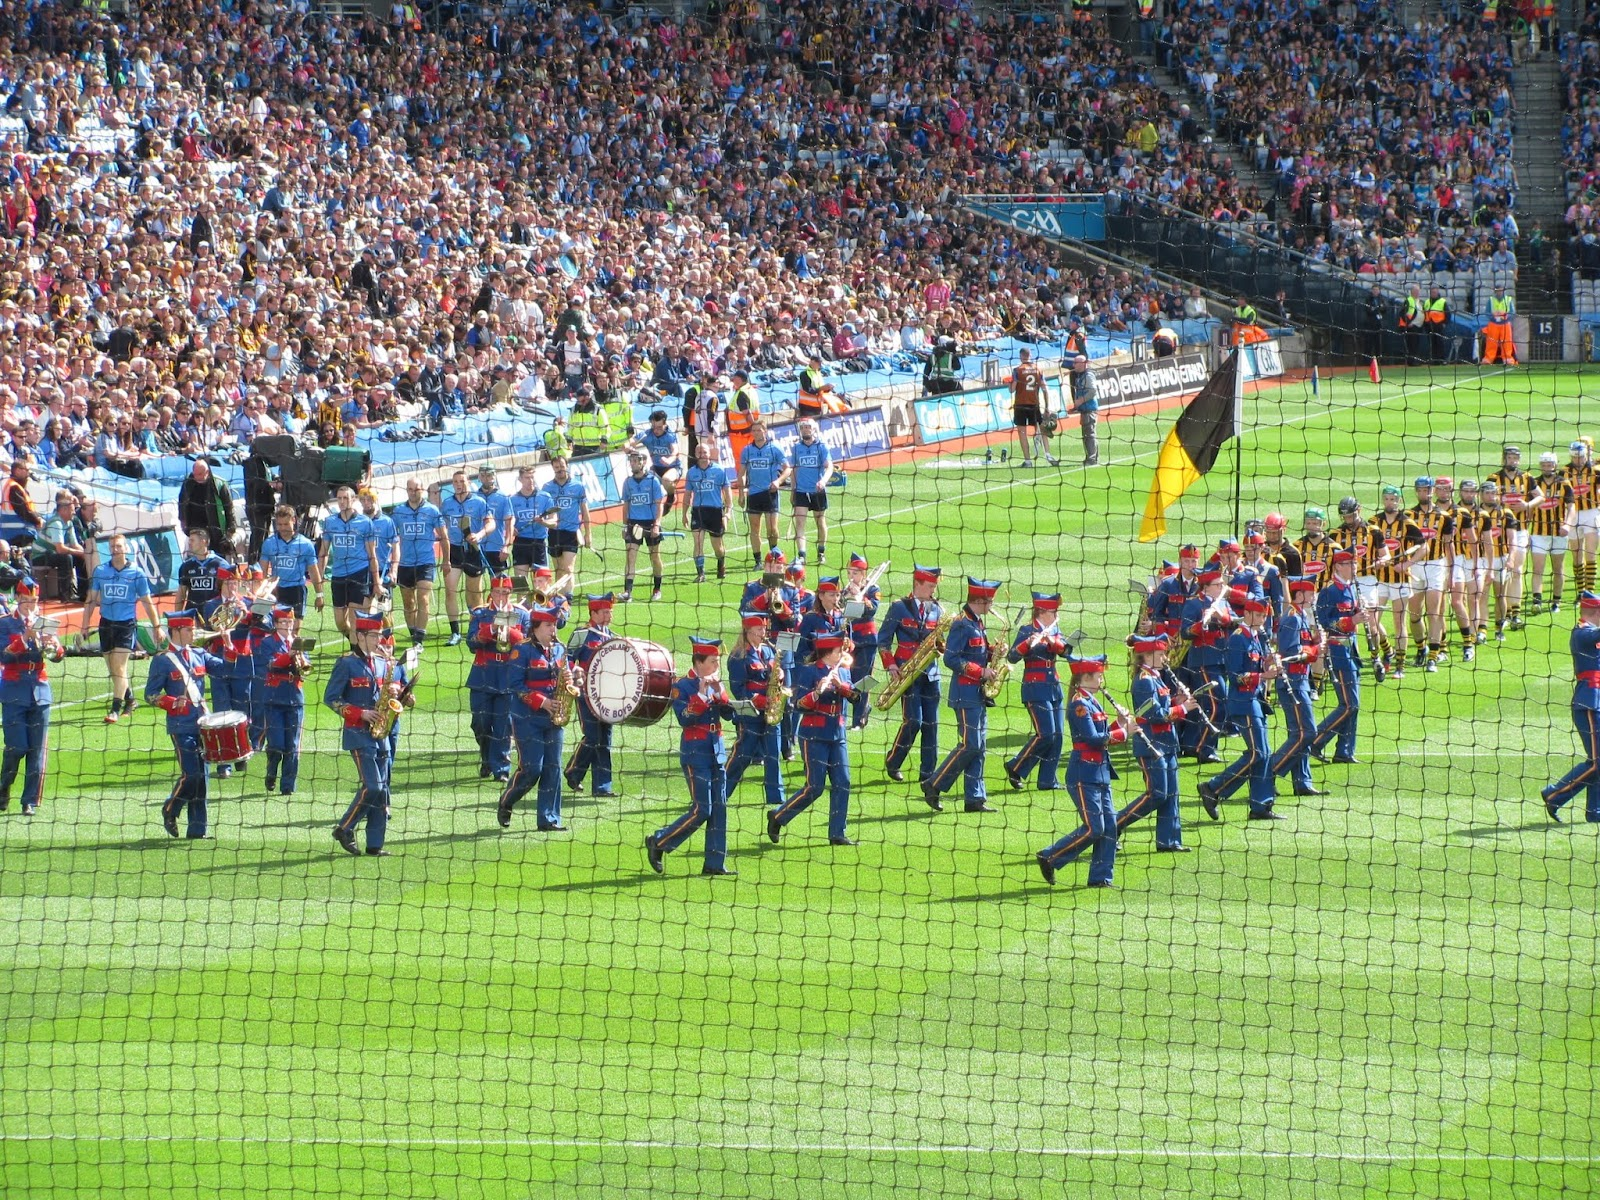 Dublin and Kilkenny on Parade at Croke Park